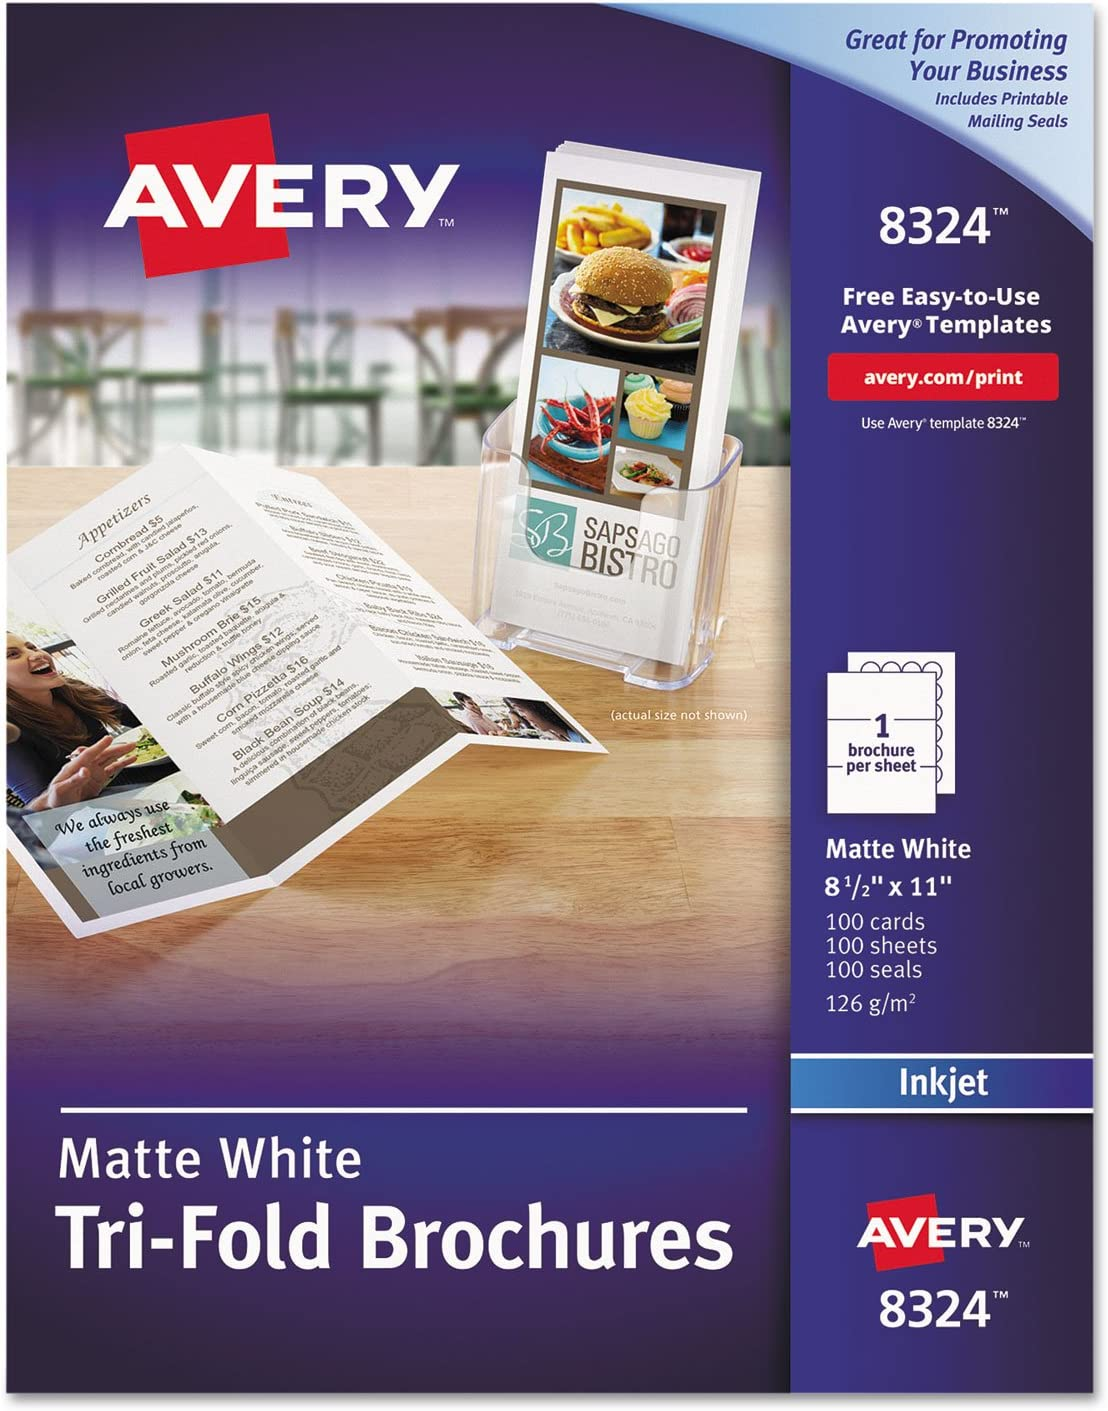 AVERY Tri-Fold Printable Brochure Paper, Inkjet Printers, 100 Brochures and Mailing Seals, 8.5 x 11 (8324), White